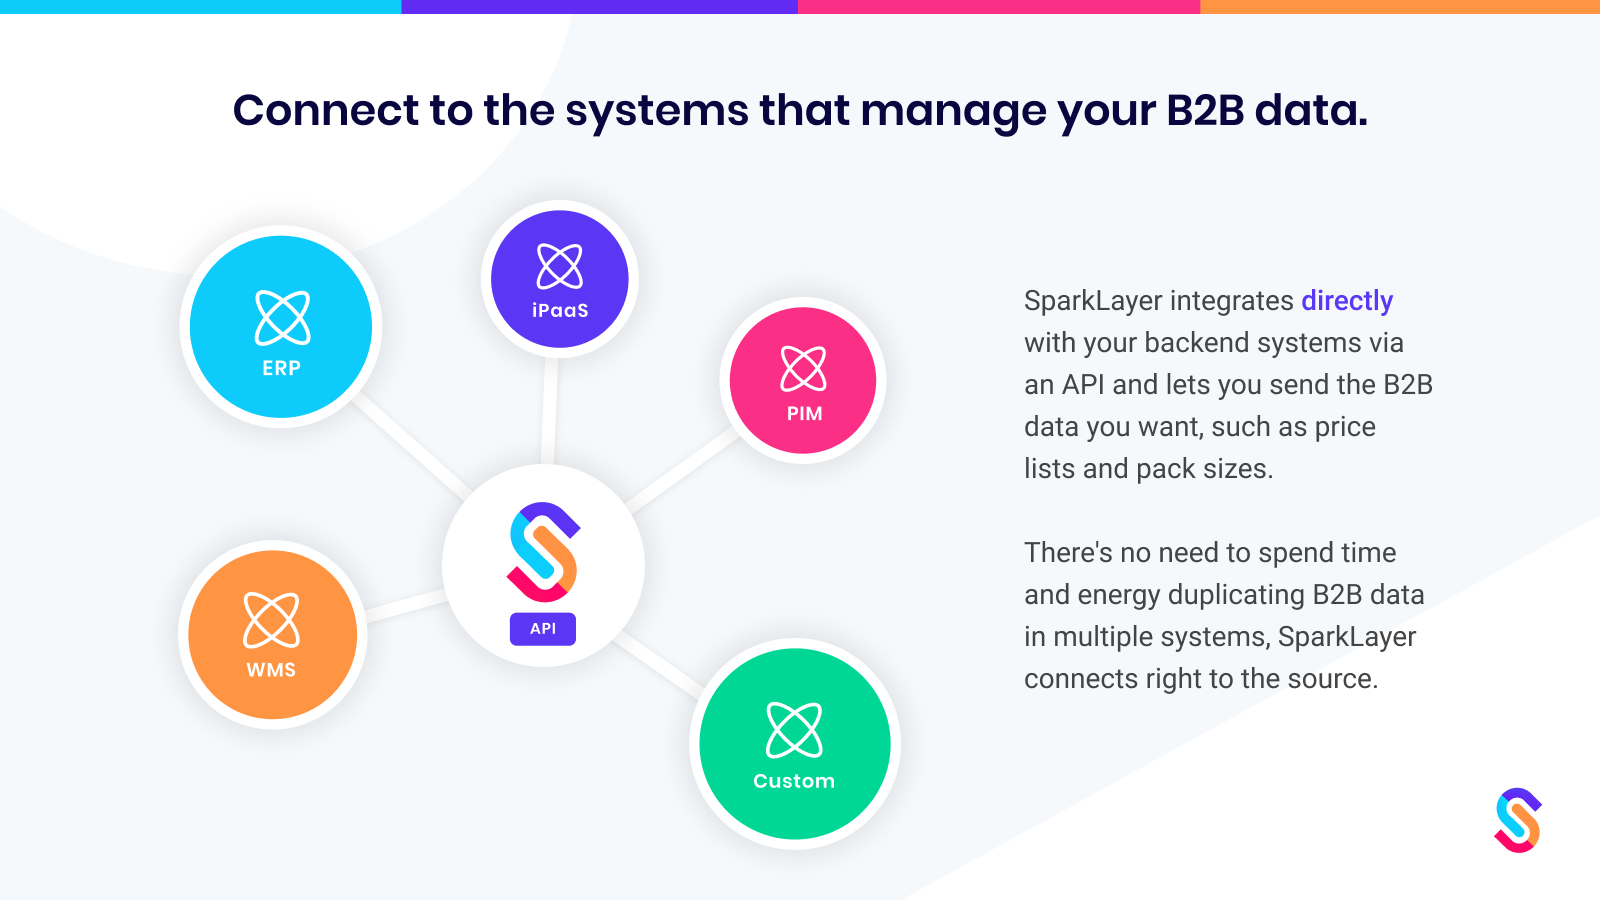 Connect your backend systems such as an ERP, PIM, CRM, or iPaaS